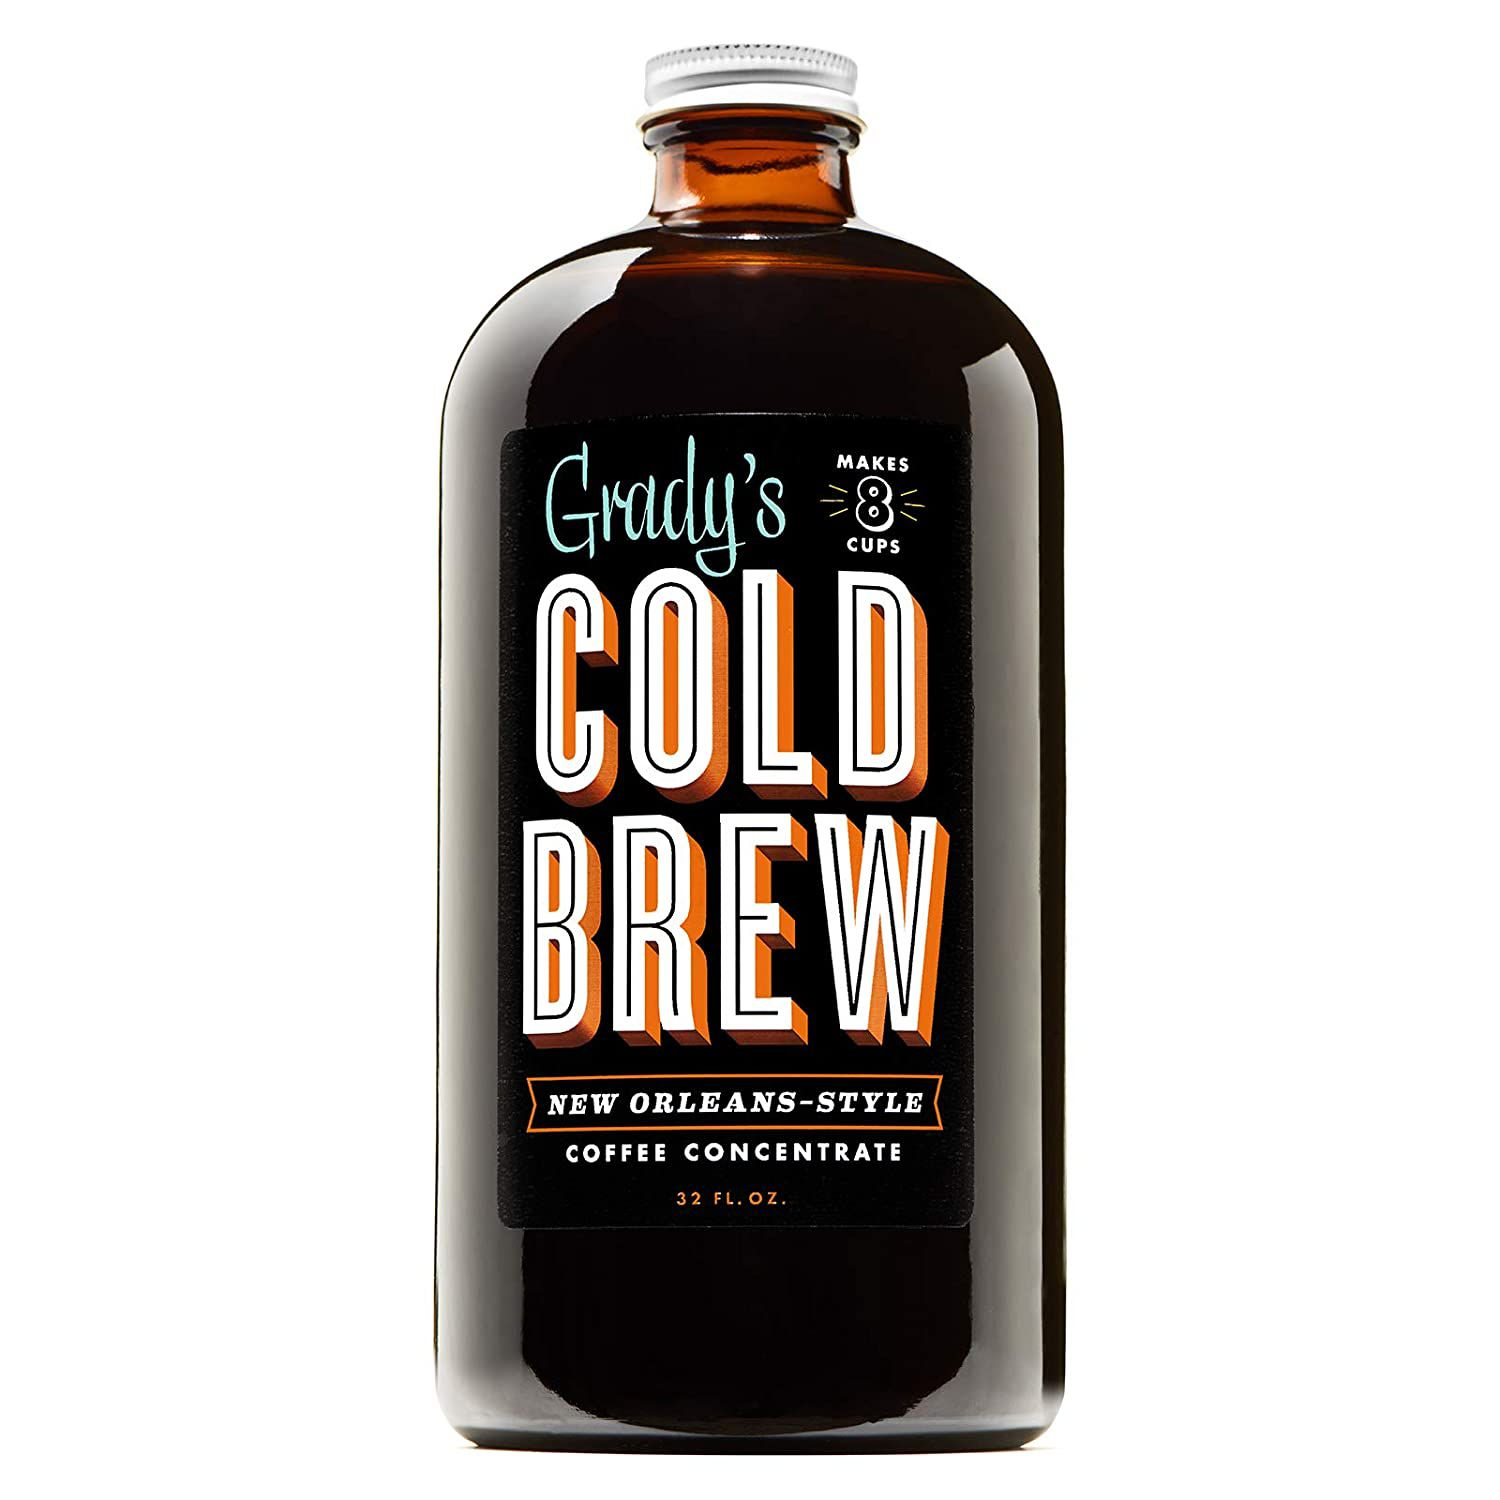 Grady's Cold Brew New Orleans-Style Coffee Concentrate